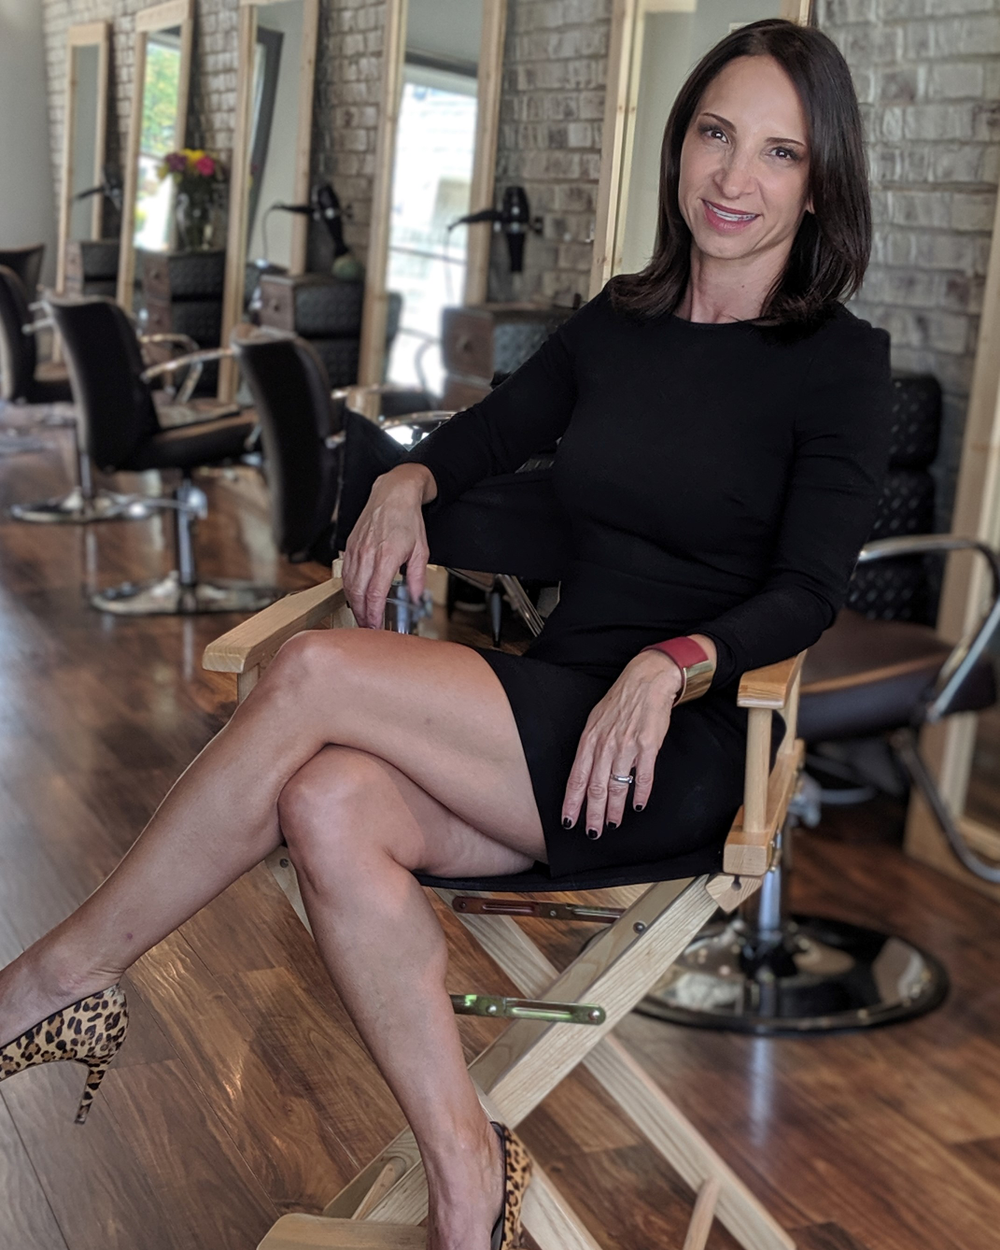 <p><strong>Whip Salon founder Amy Pal has created a business model that gives entrepreneurs the opportunity to own a salon without having to build it from the ground up.</strong></p>